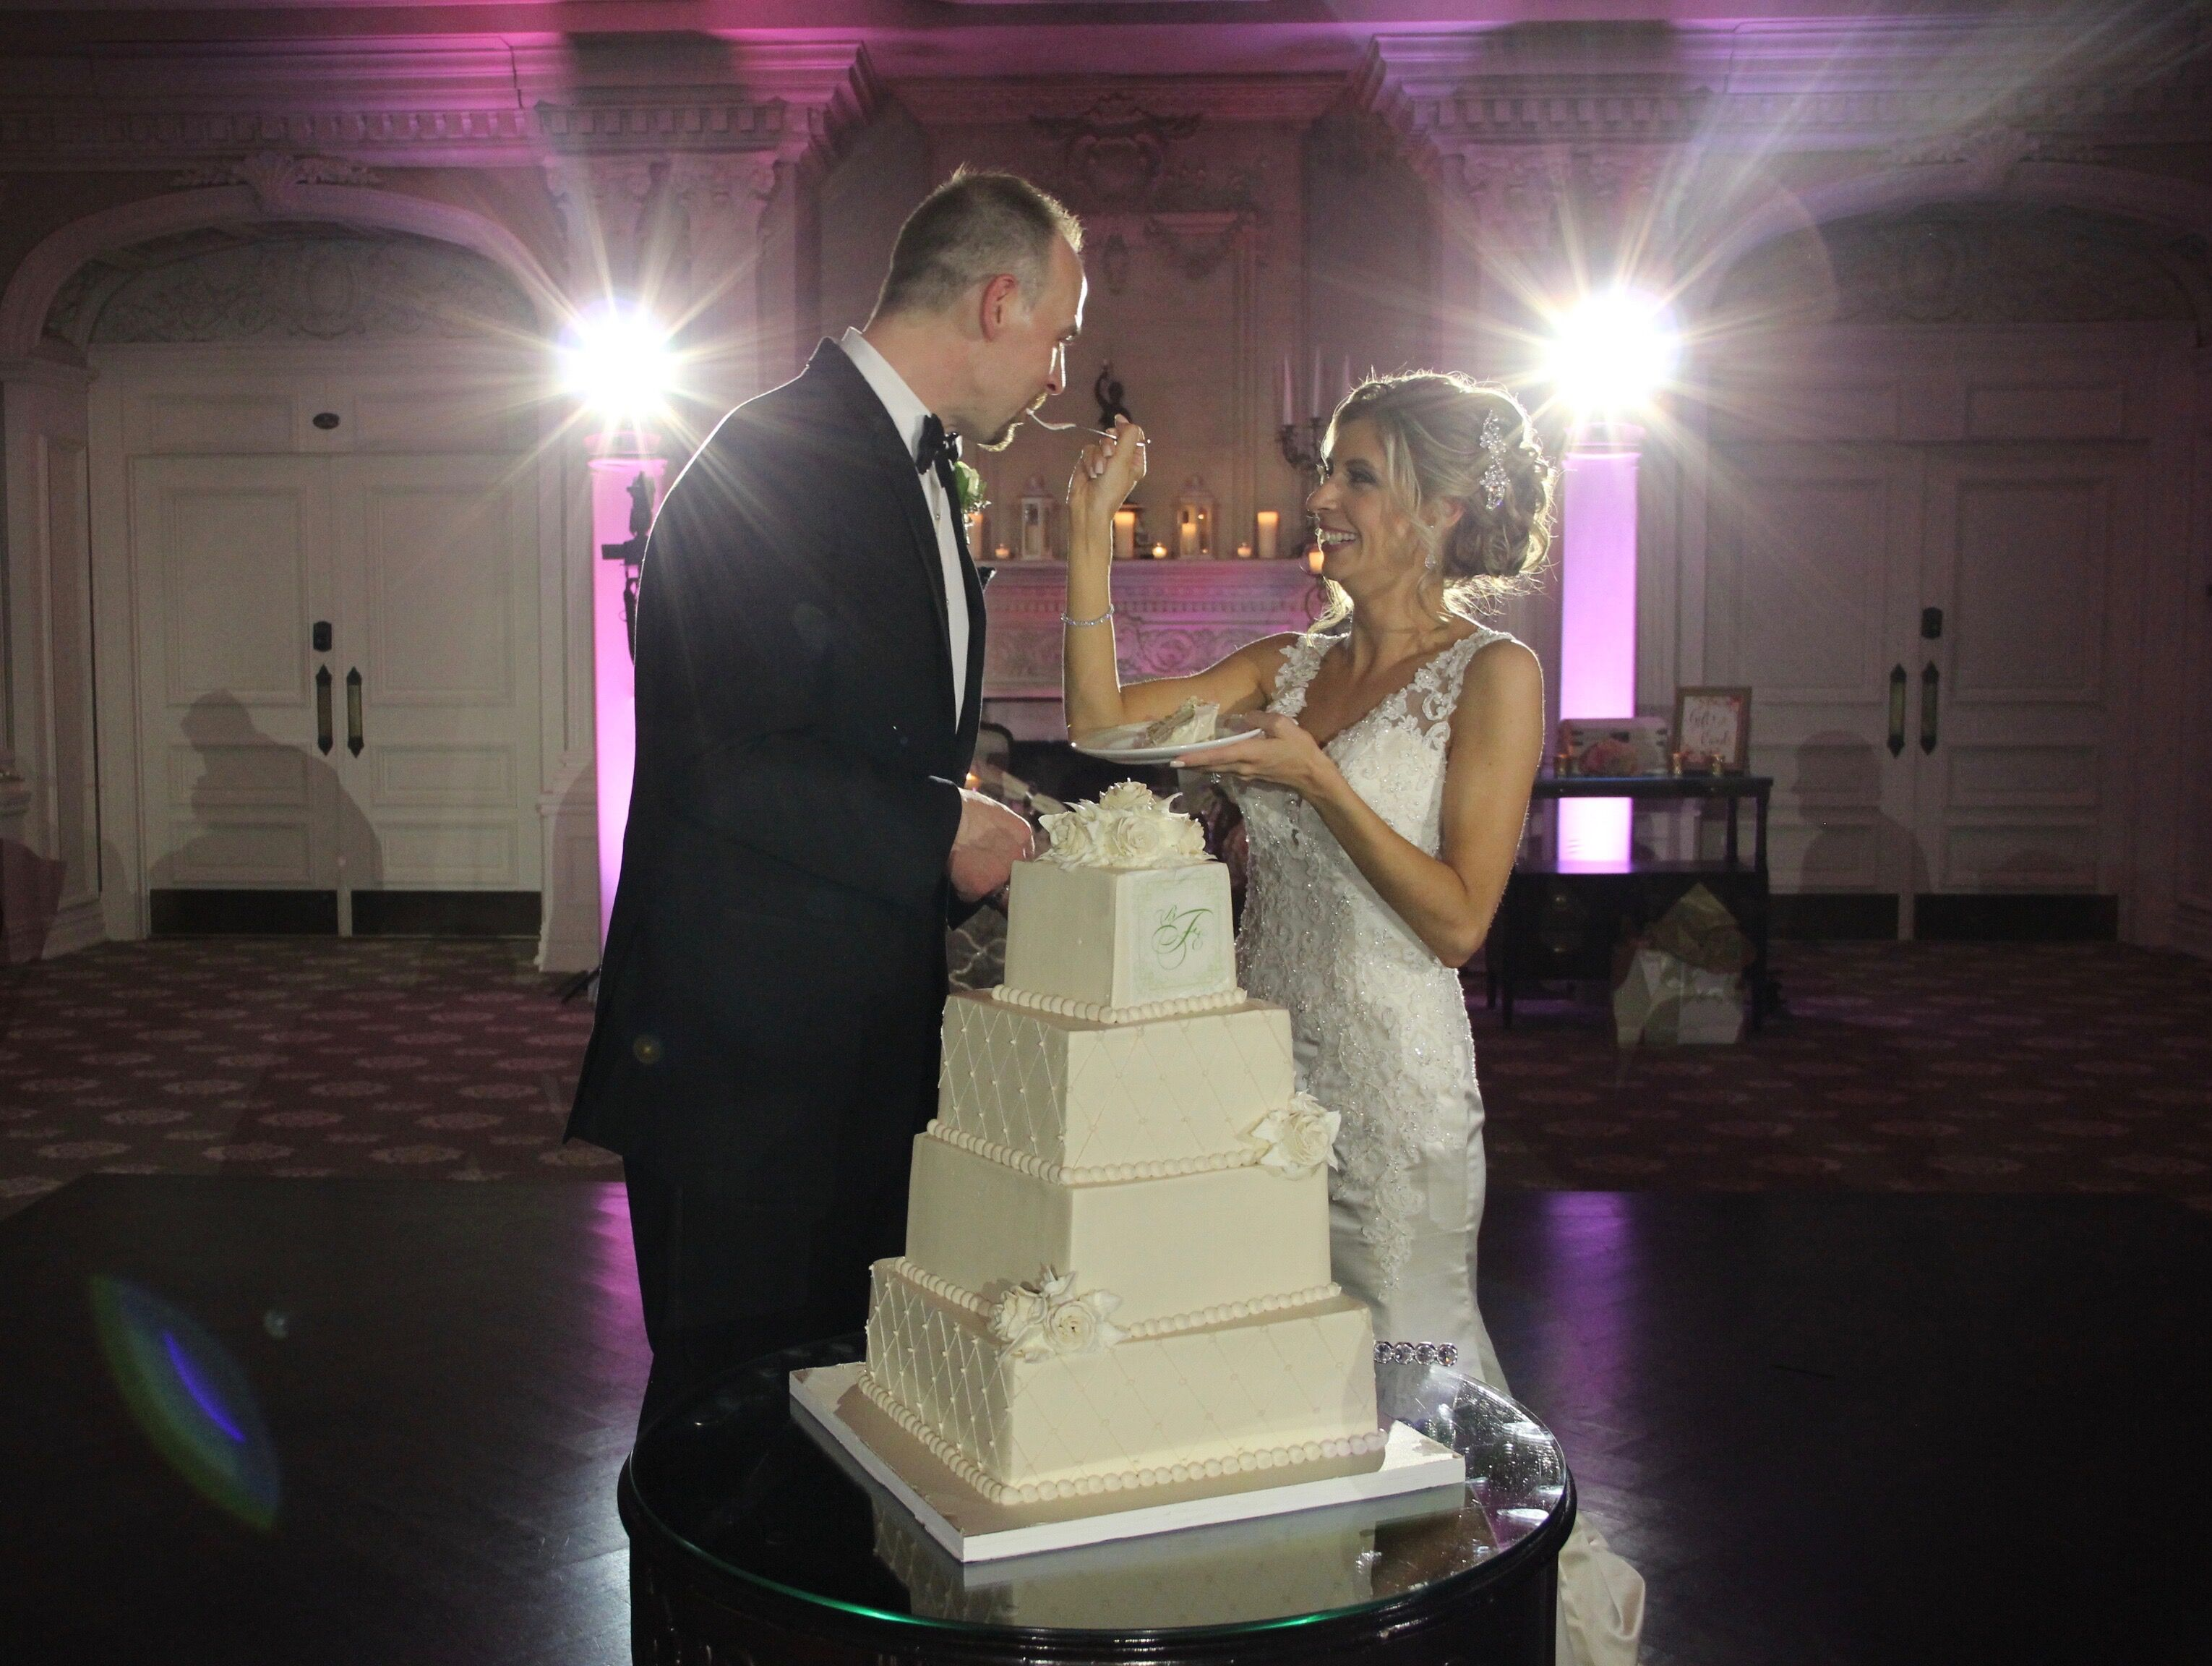 Bride and groom feed each other wedding cake surrounded by intelligent lighting towers at Park Savoy, NJ